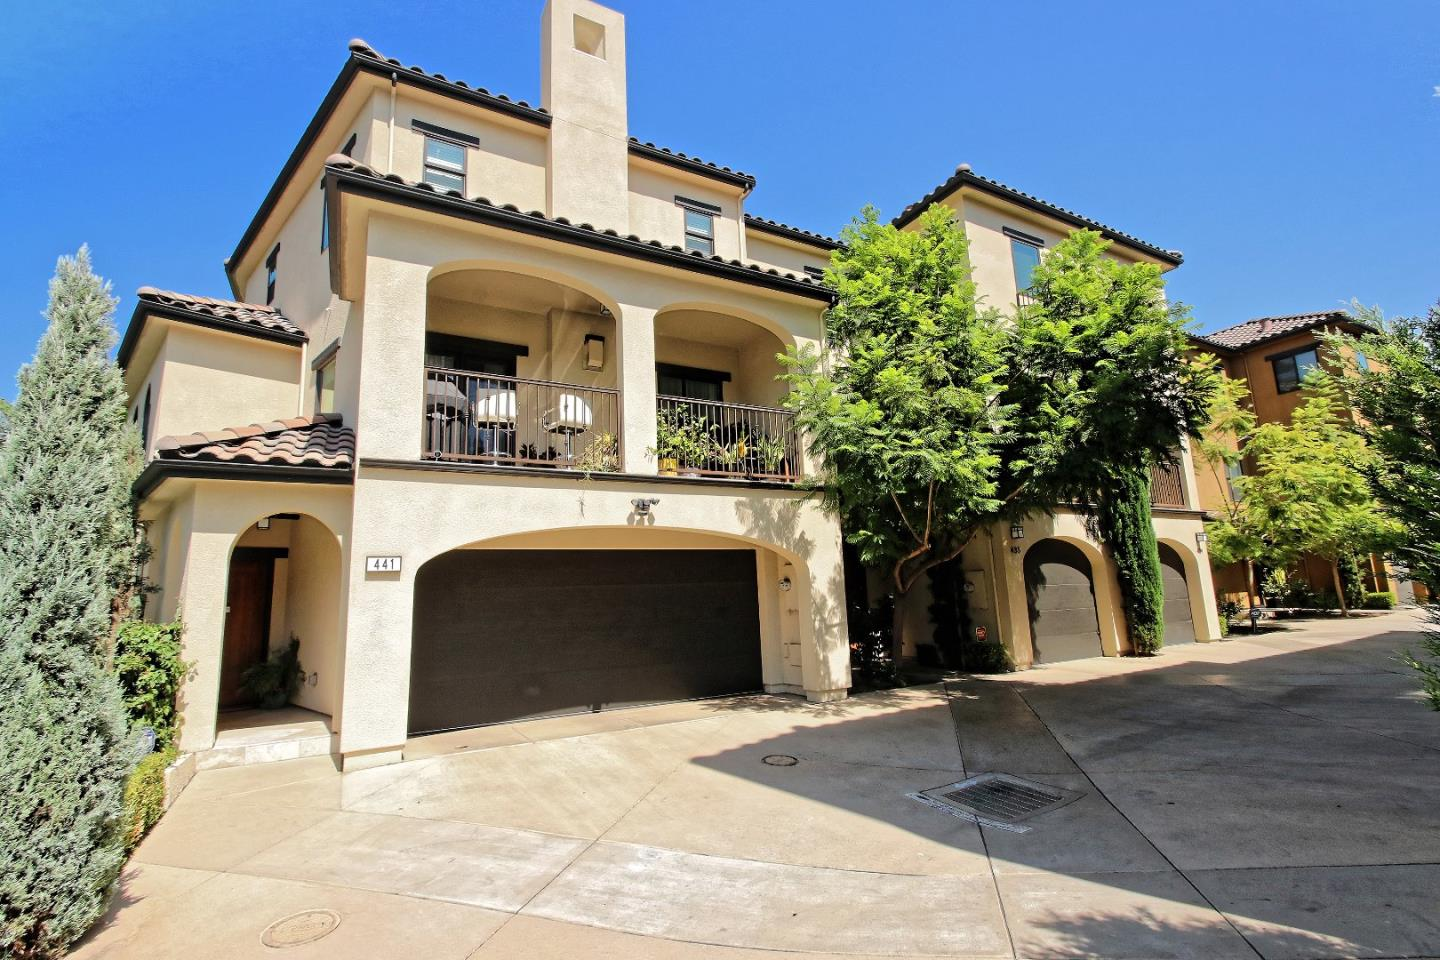 435 Willow Glen Court San Jose, CA 95125 - MLS #: ML81722269